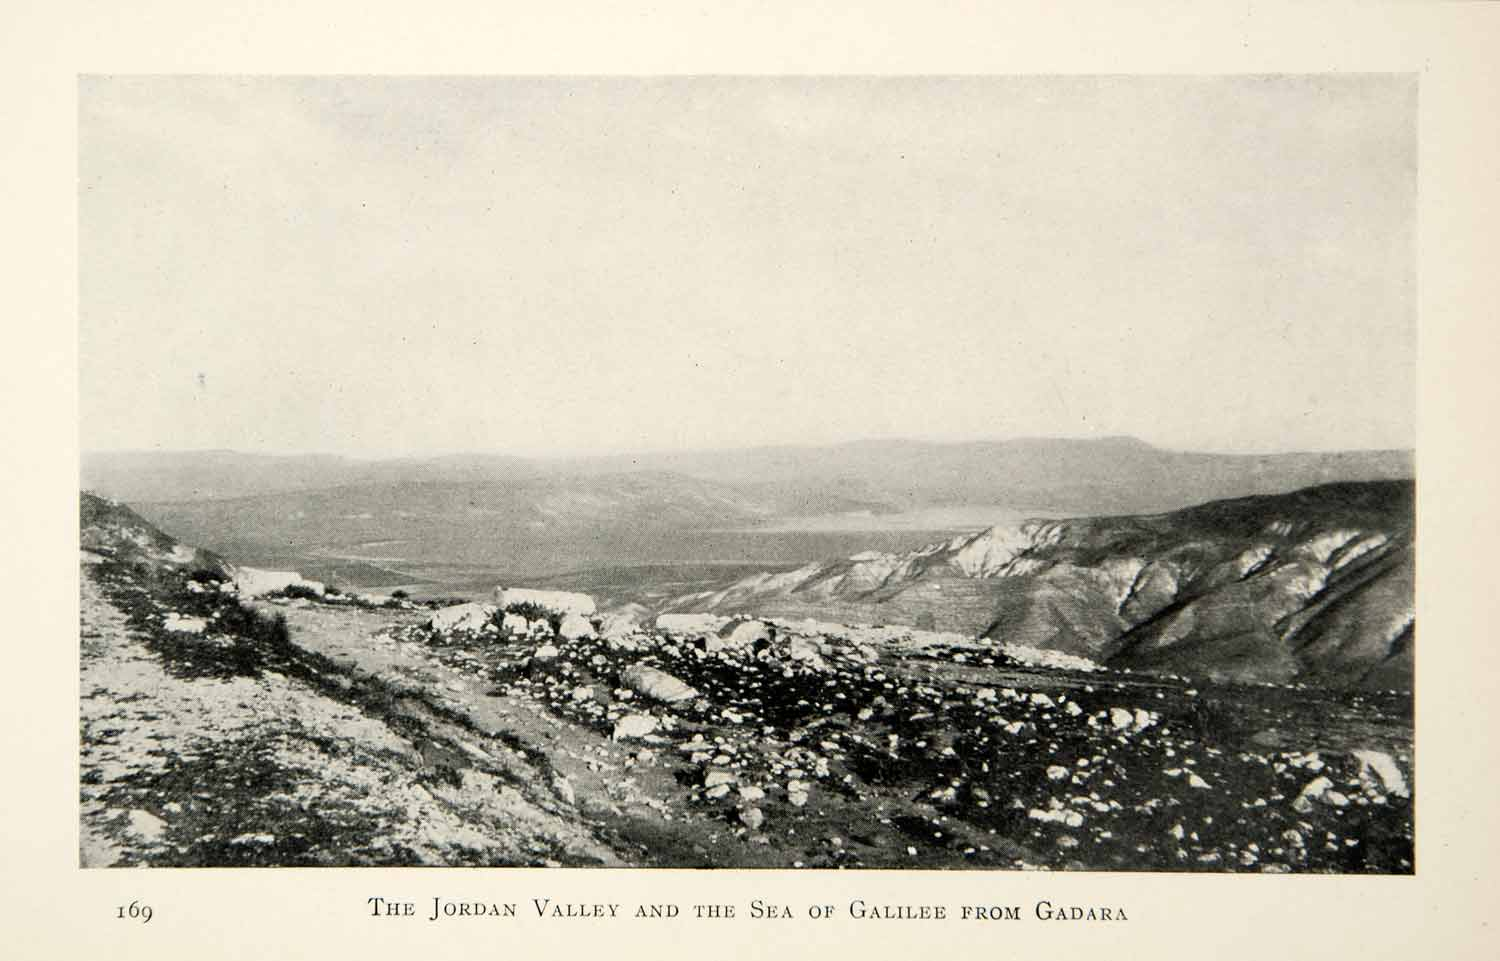 1905 Print Jordan Valley Sea of Galilee Gadara Middle East Landscape XGCD8